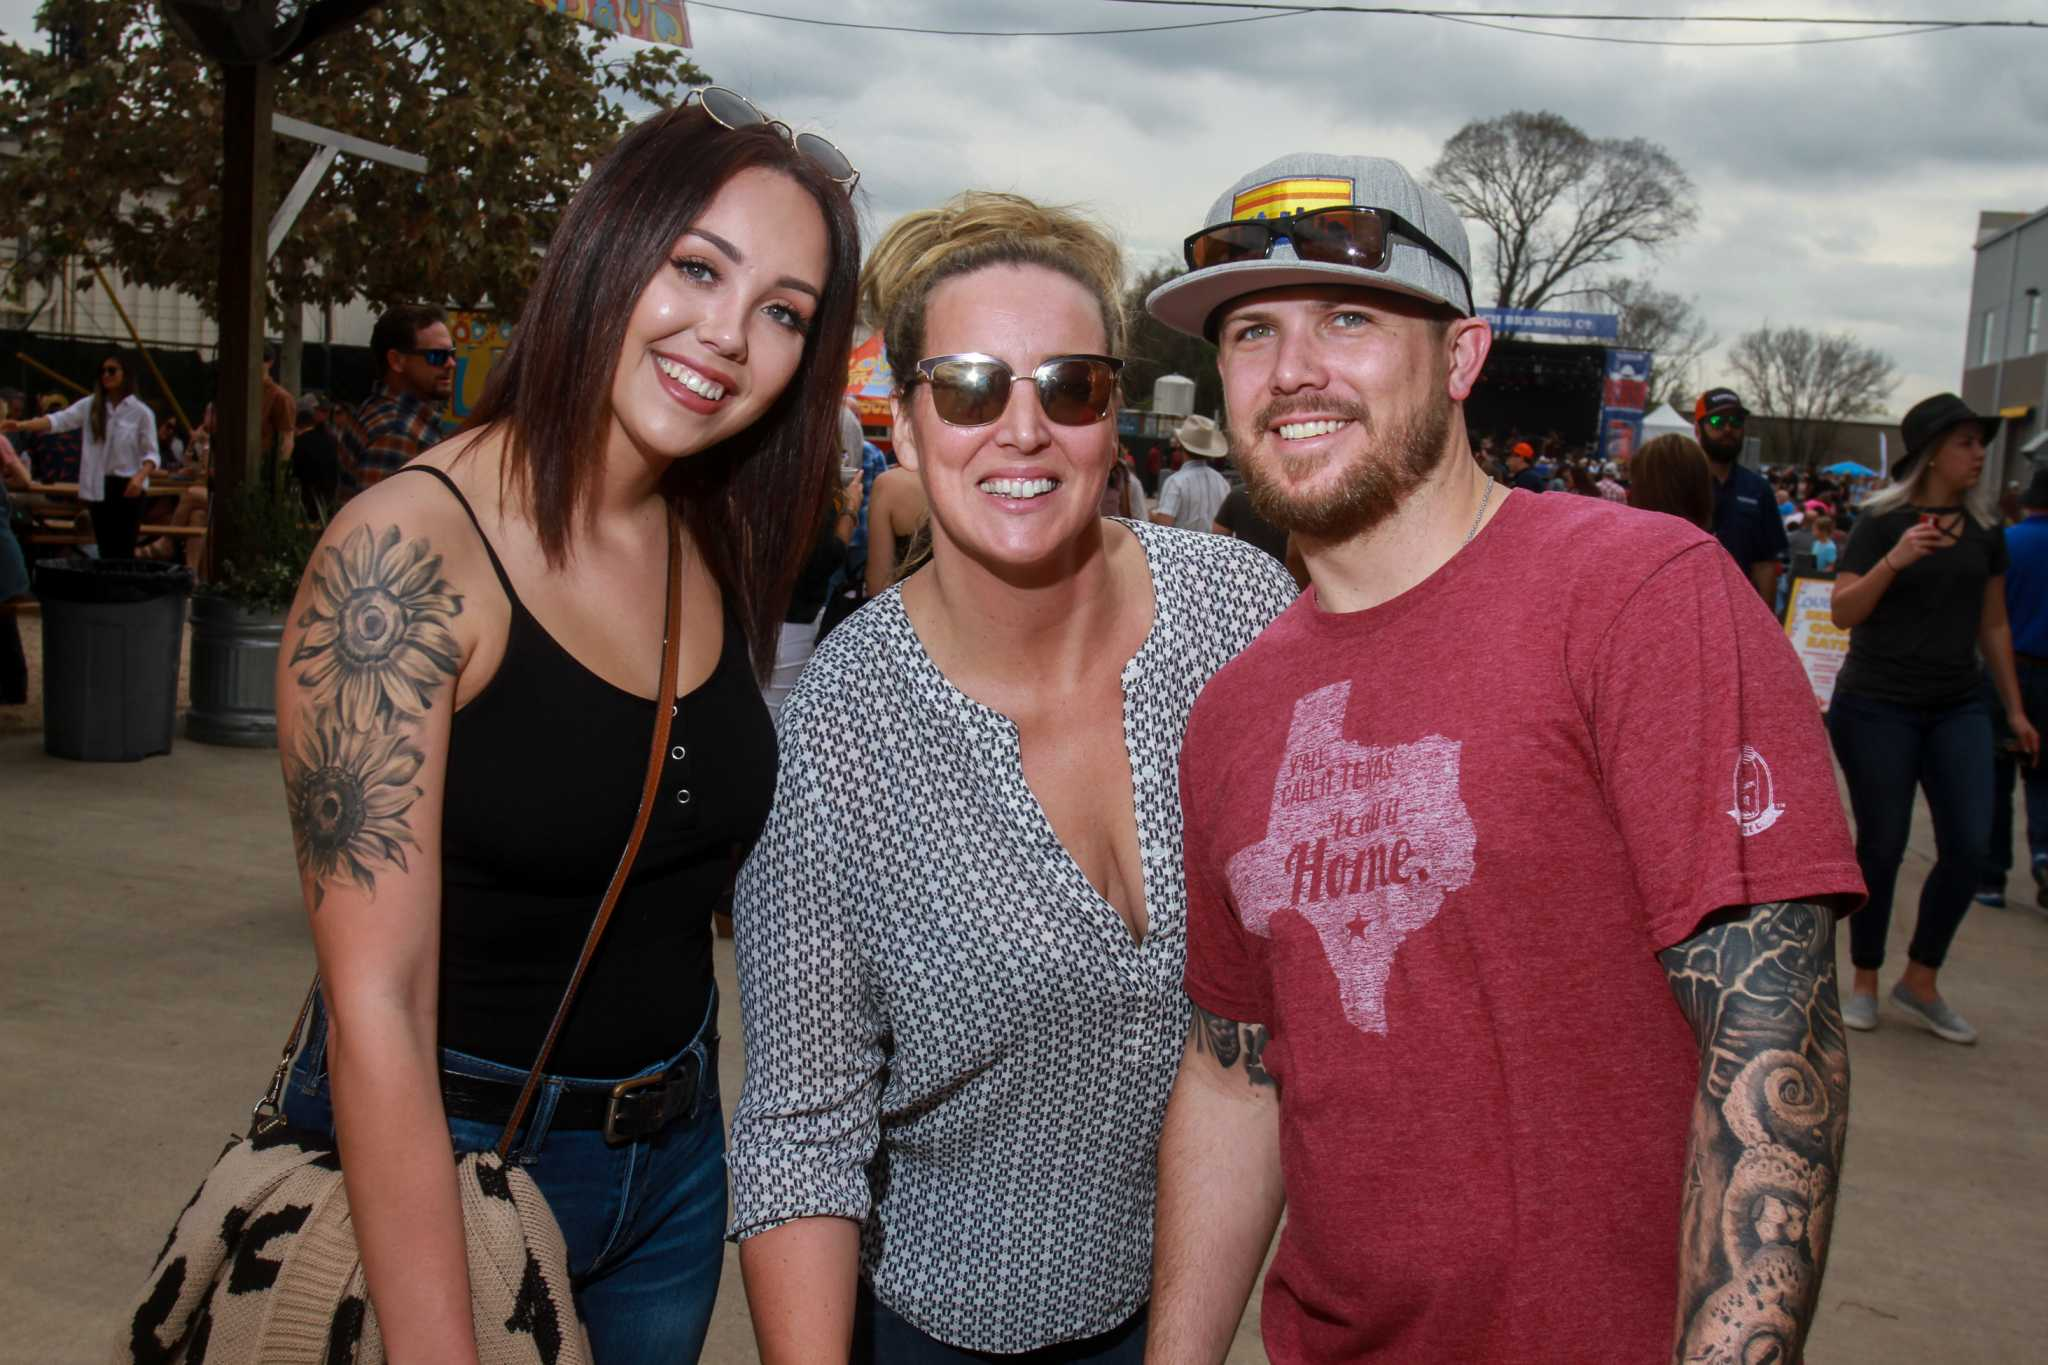 Karbach's Rodeo Clown Roundup brings out country music fans